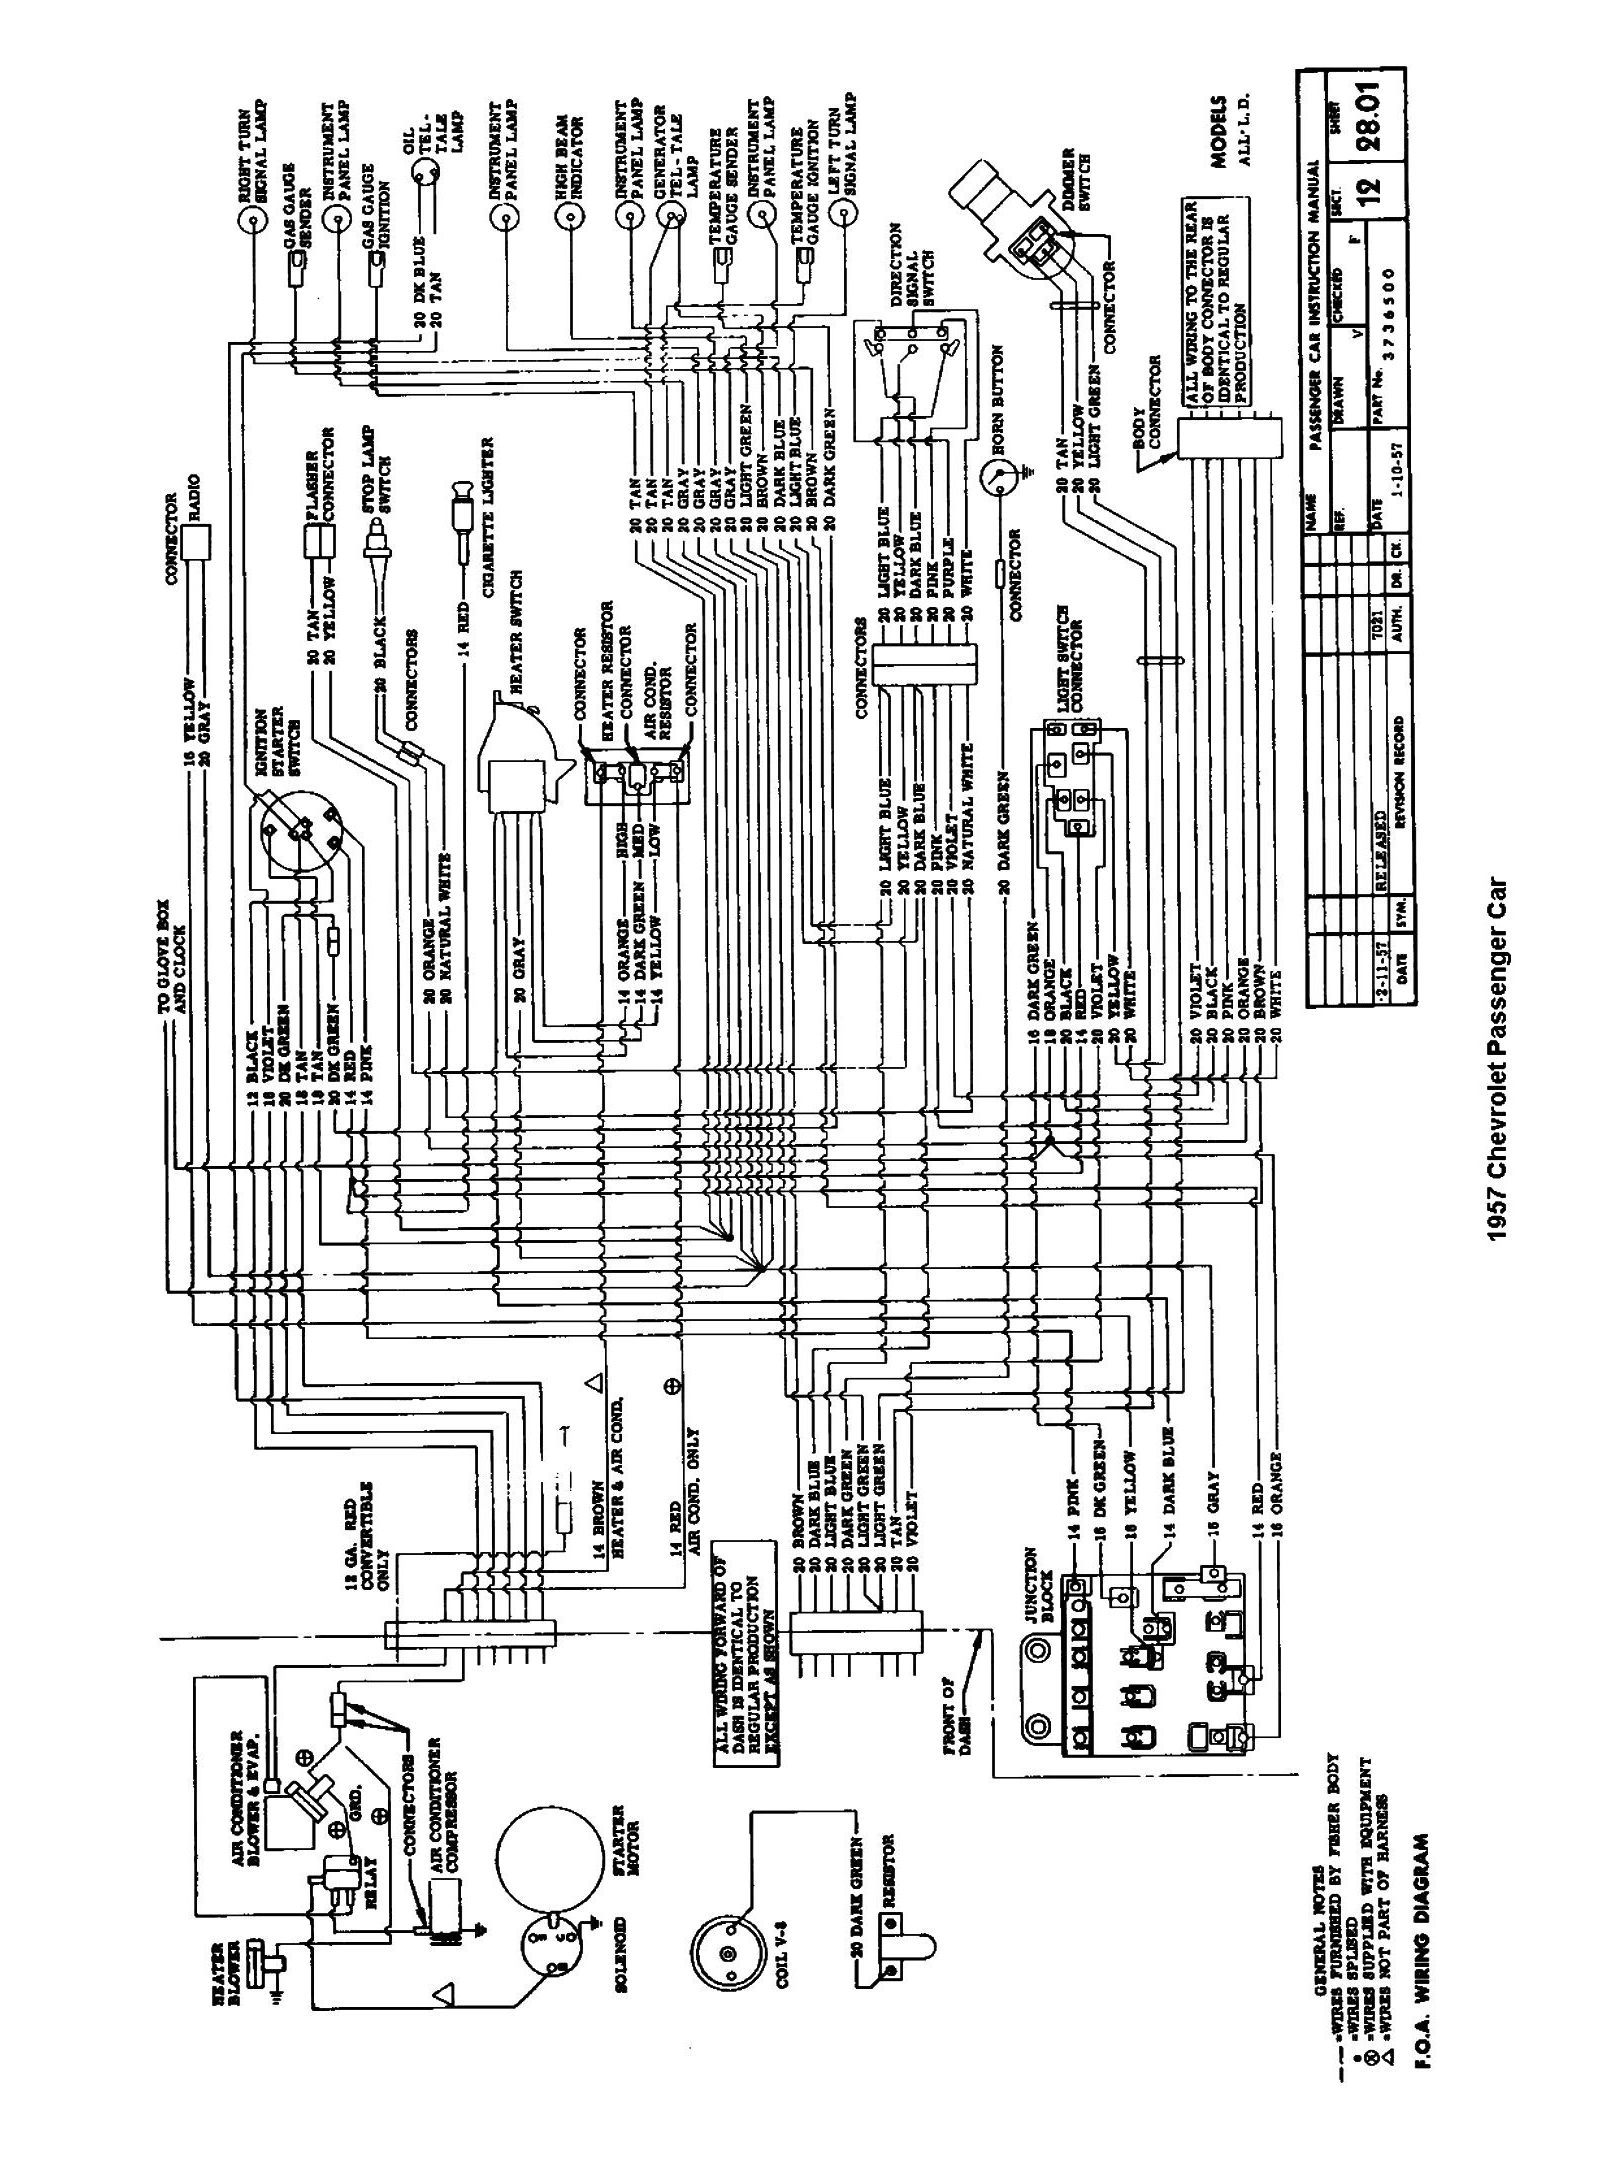 57car2 chevy wiring diagrams 1957 chevrolet wiring diagram at gsmx.co